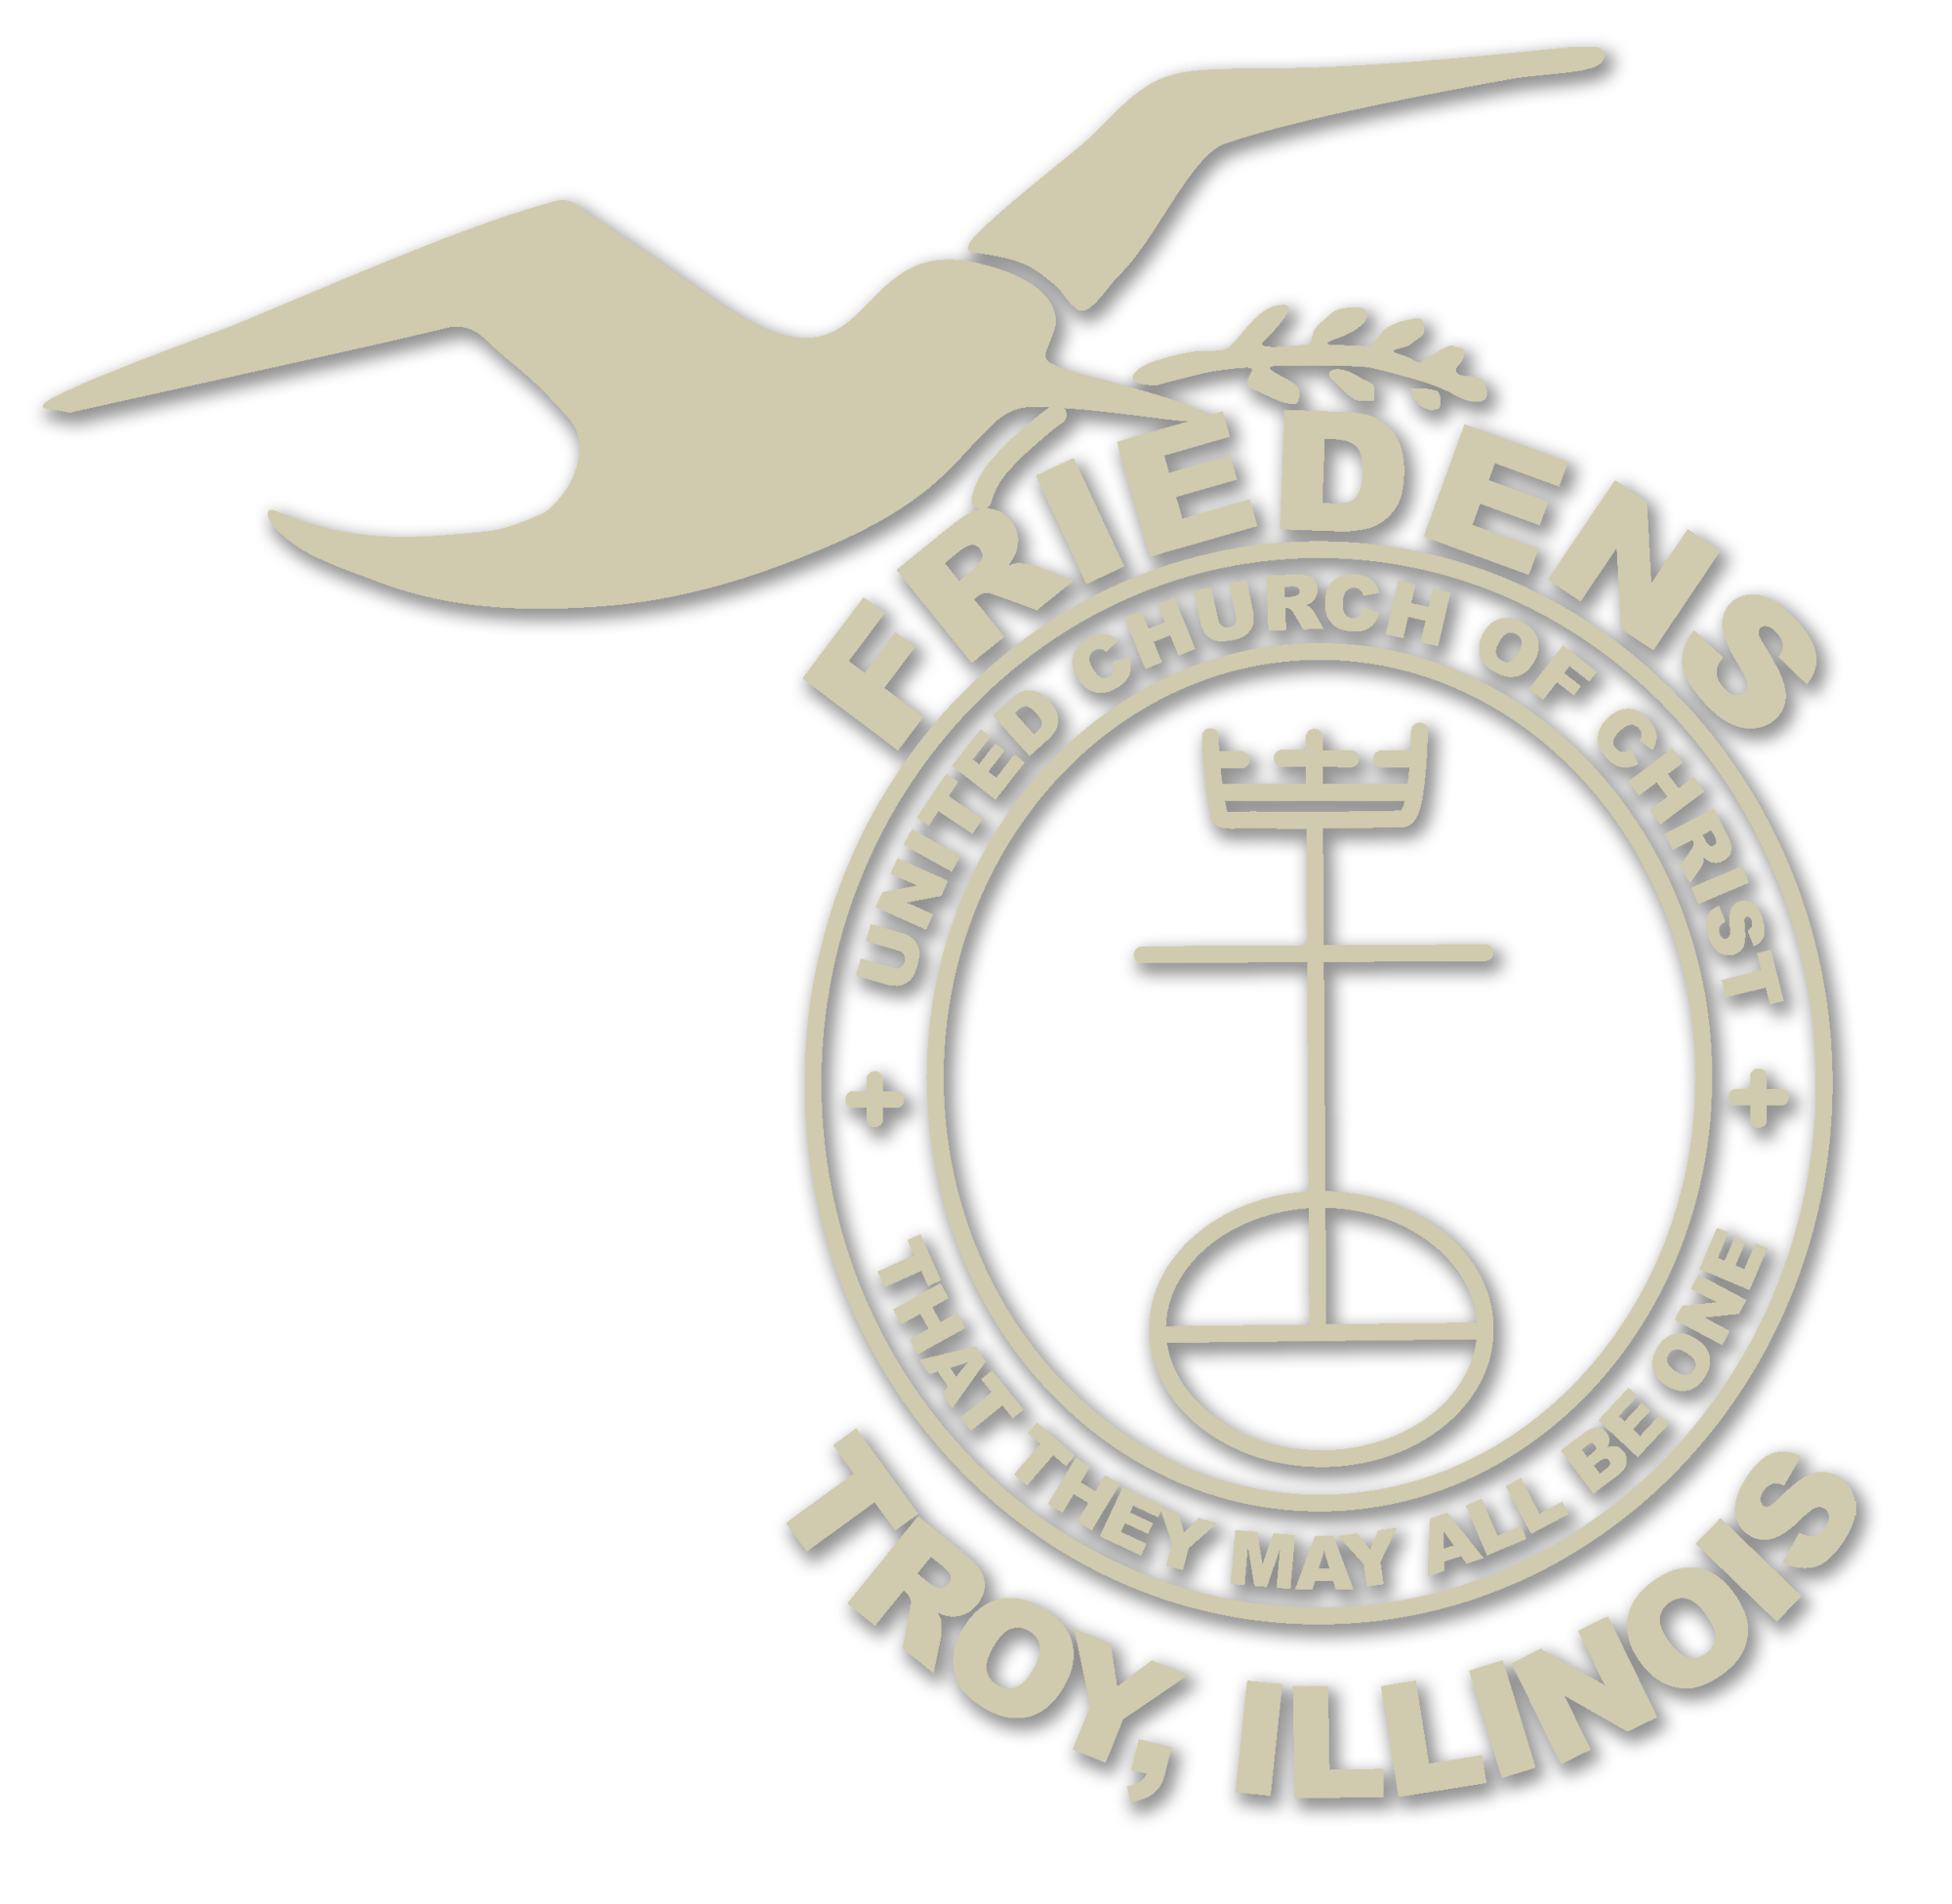 Friedens United Church of Christ in Troy, IL